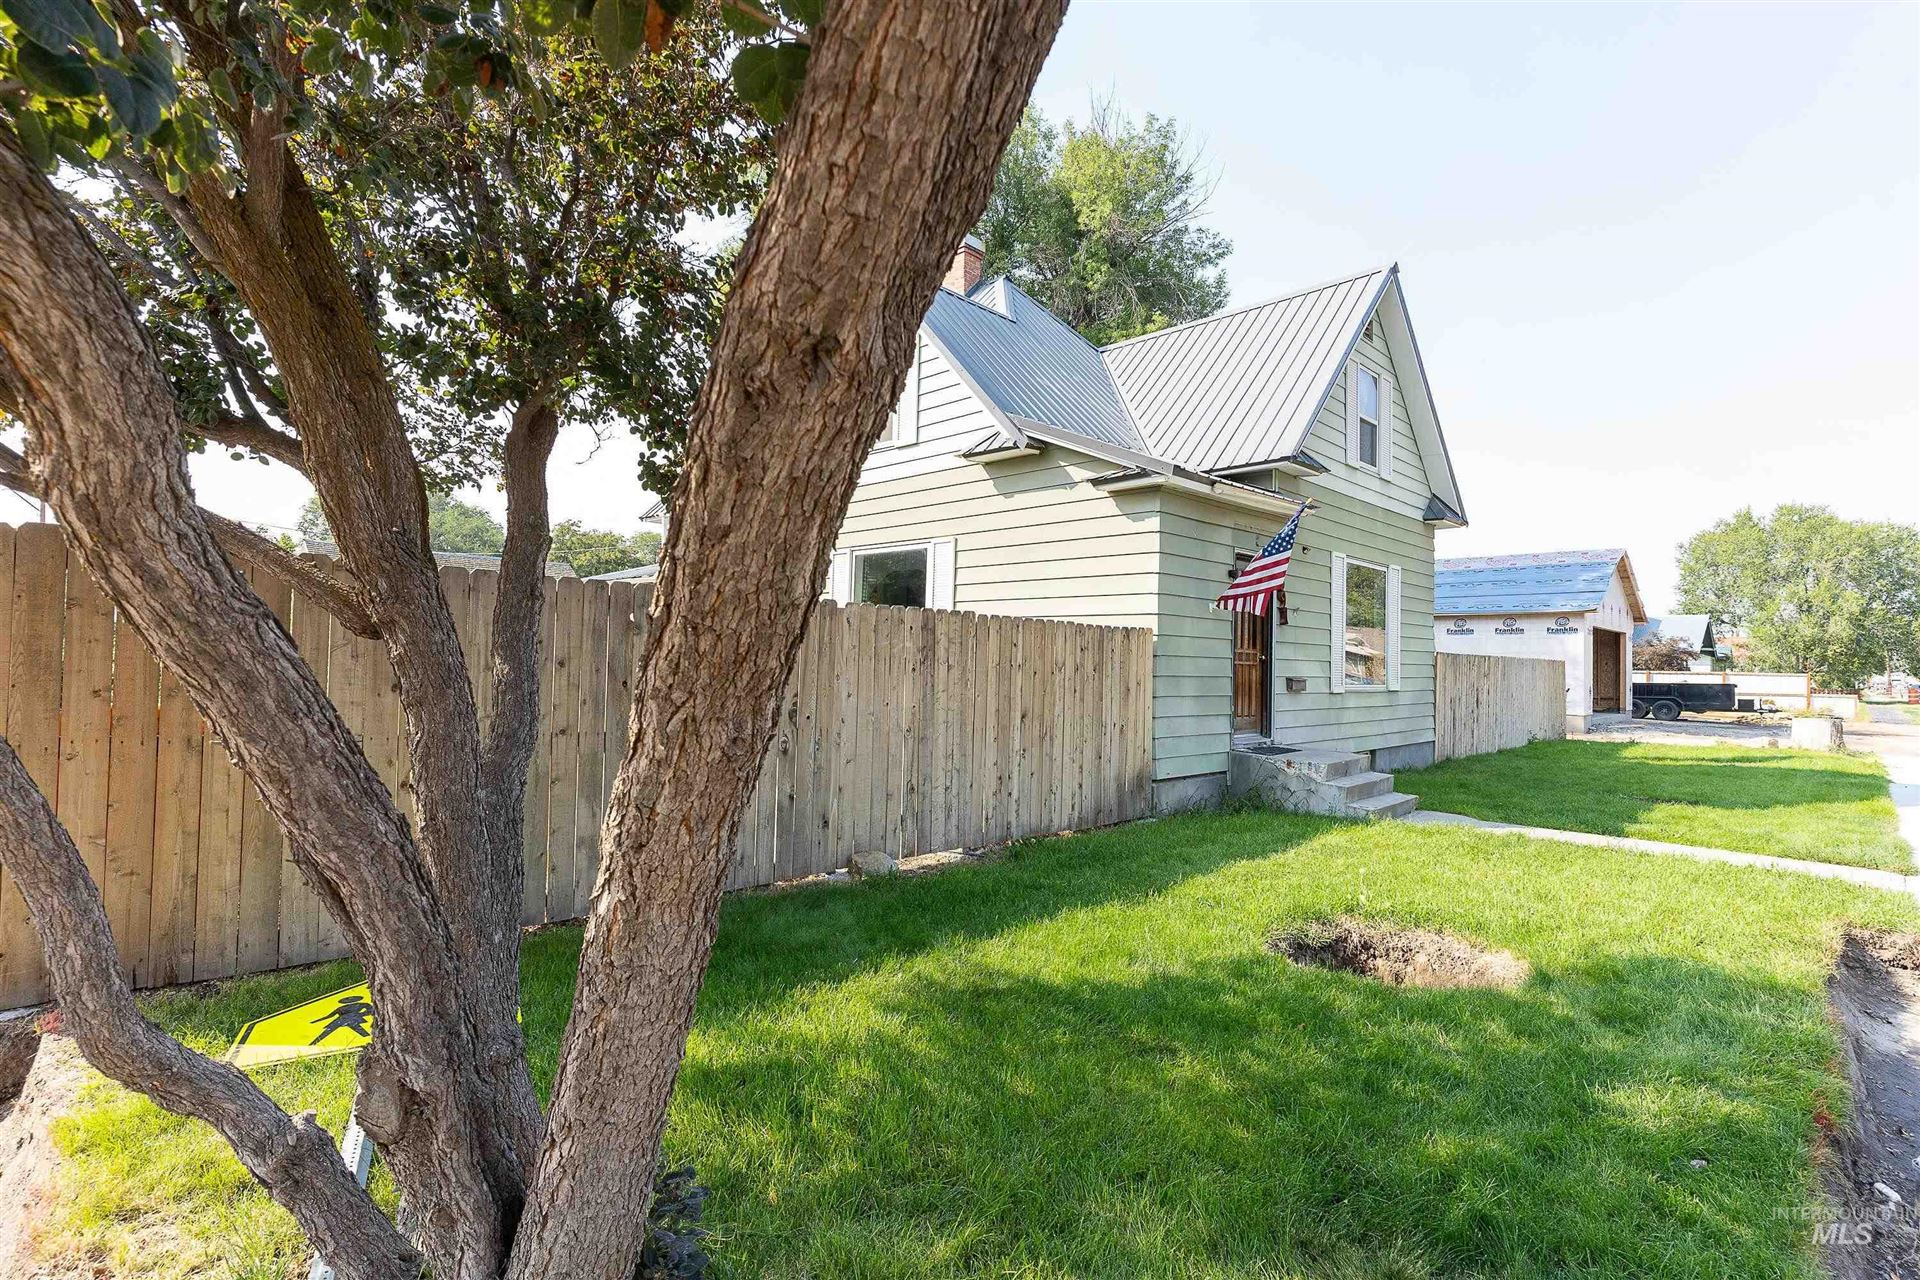 Photo of 591 W Main St S, Vale, OR 97918 (MLS # 98818854)